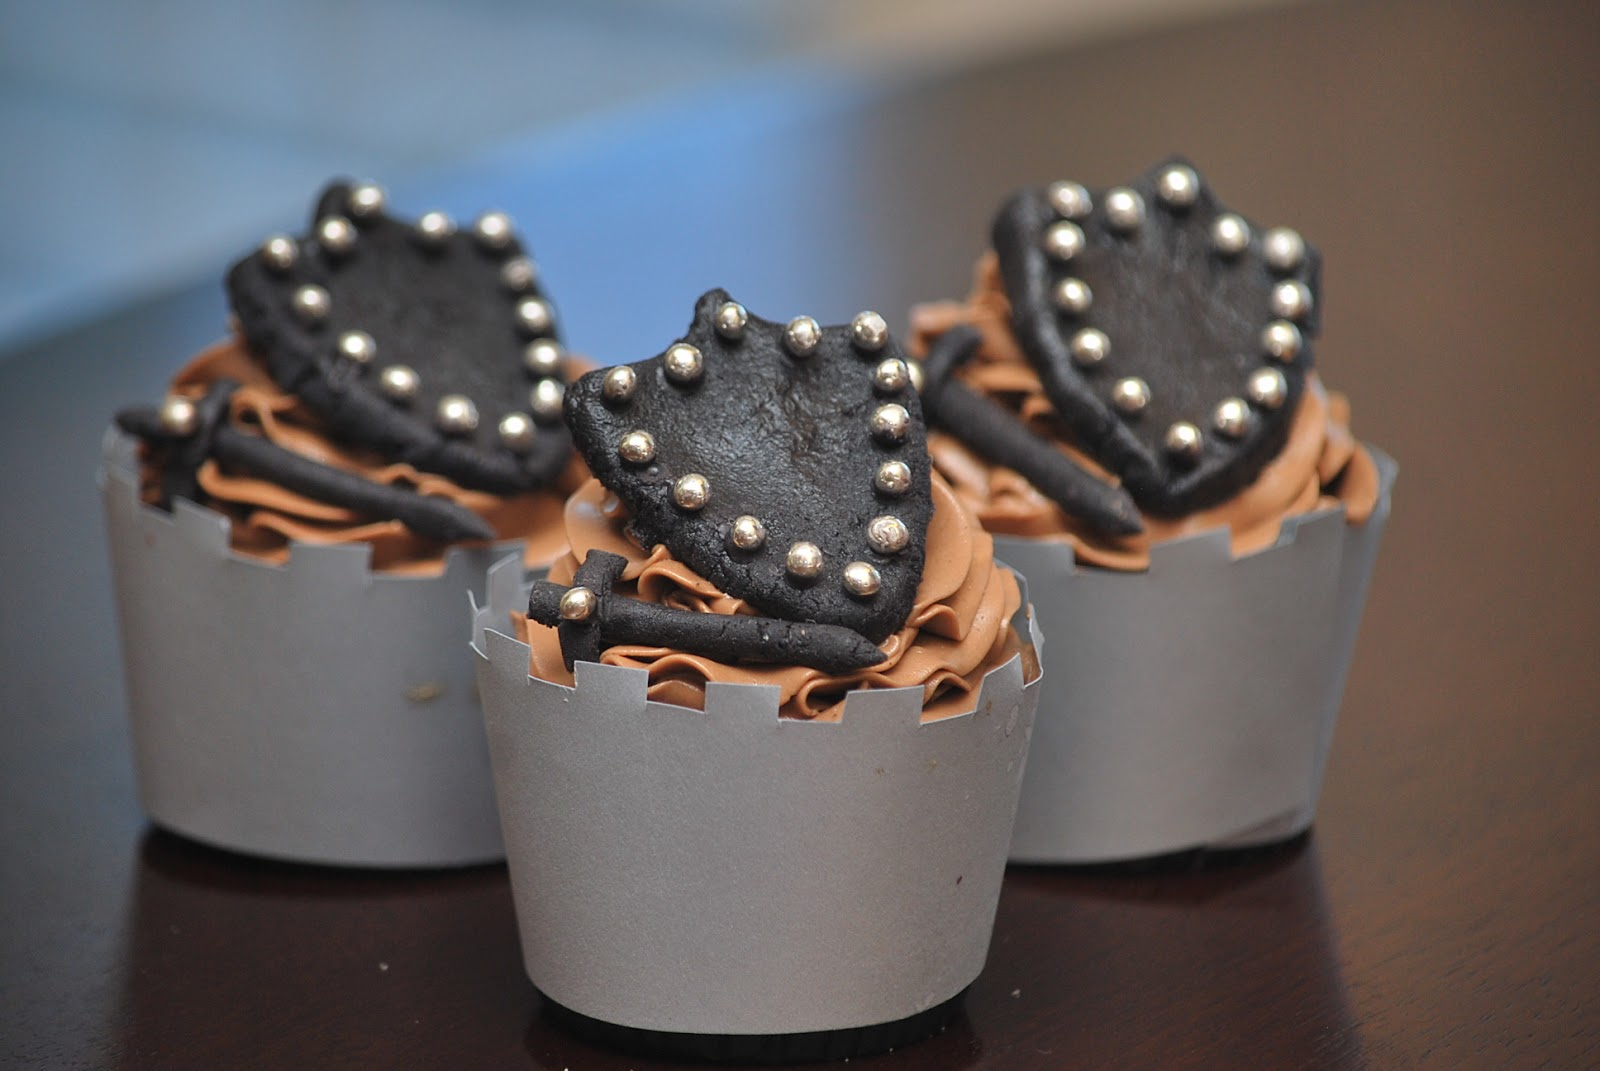 My story in recipes: Chocolate Stout Cupcakes